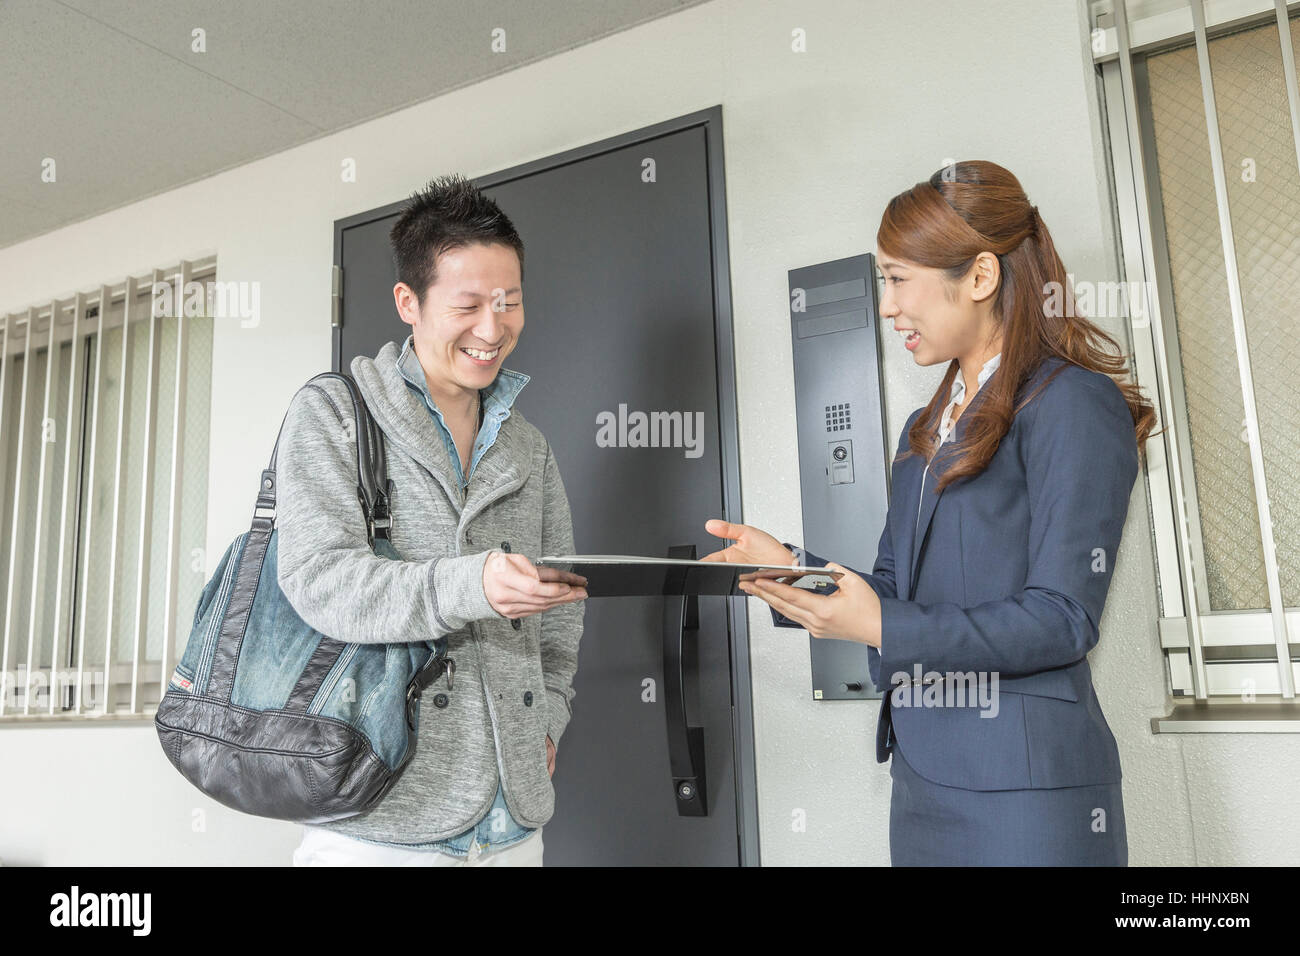 Real Estate Agent Showing Apartment to Buyer - Stock Image